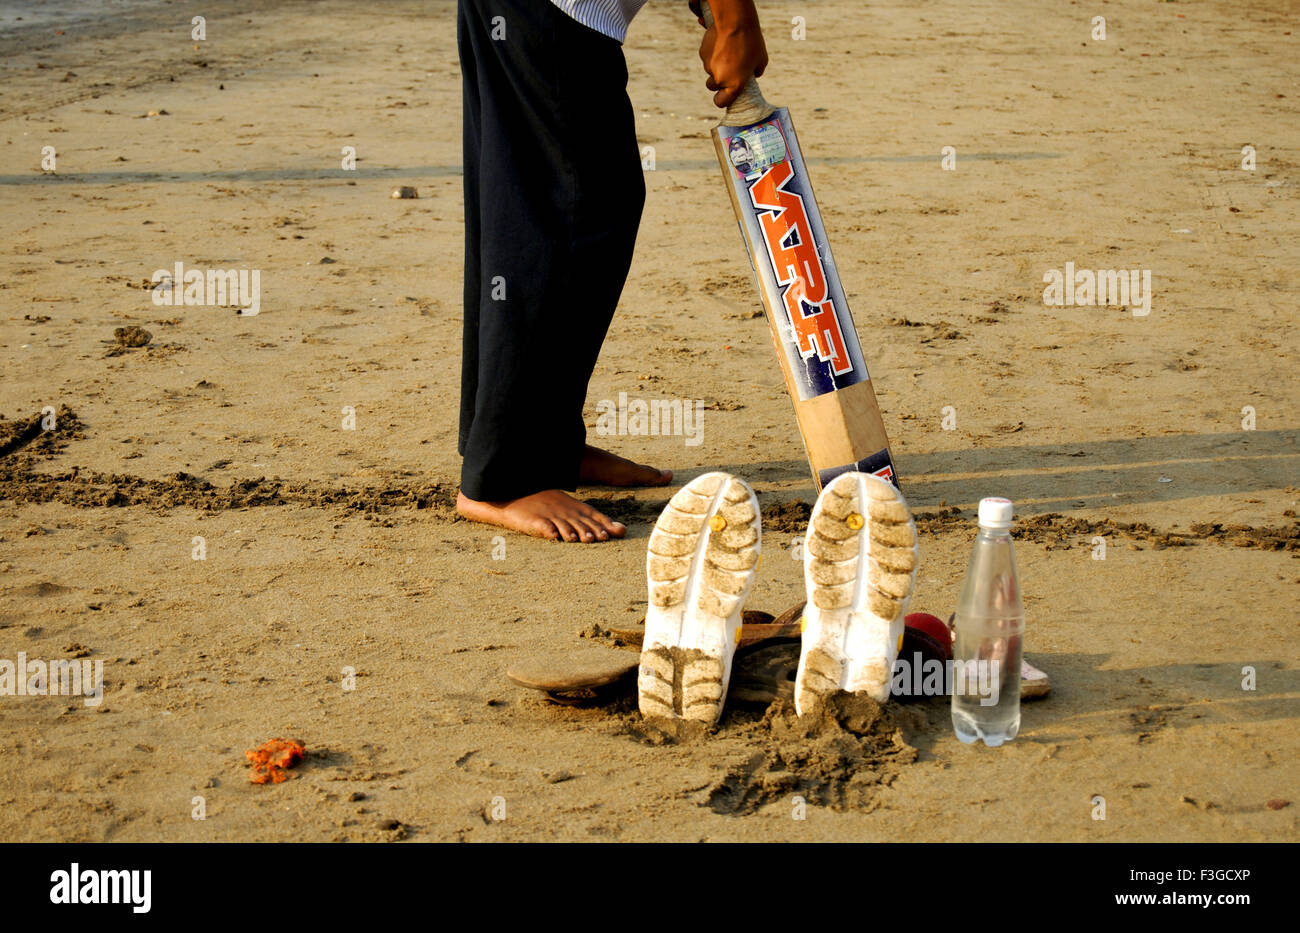 Cricket played by children at beach - Stock Image